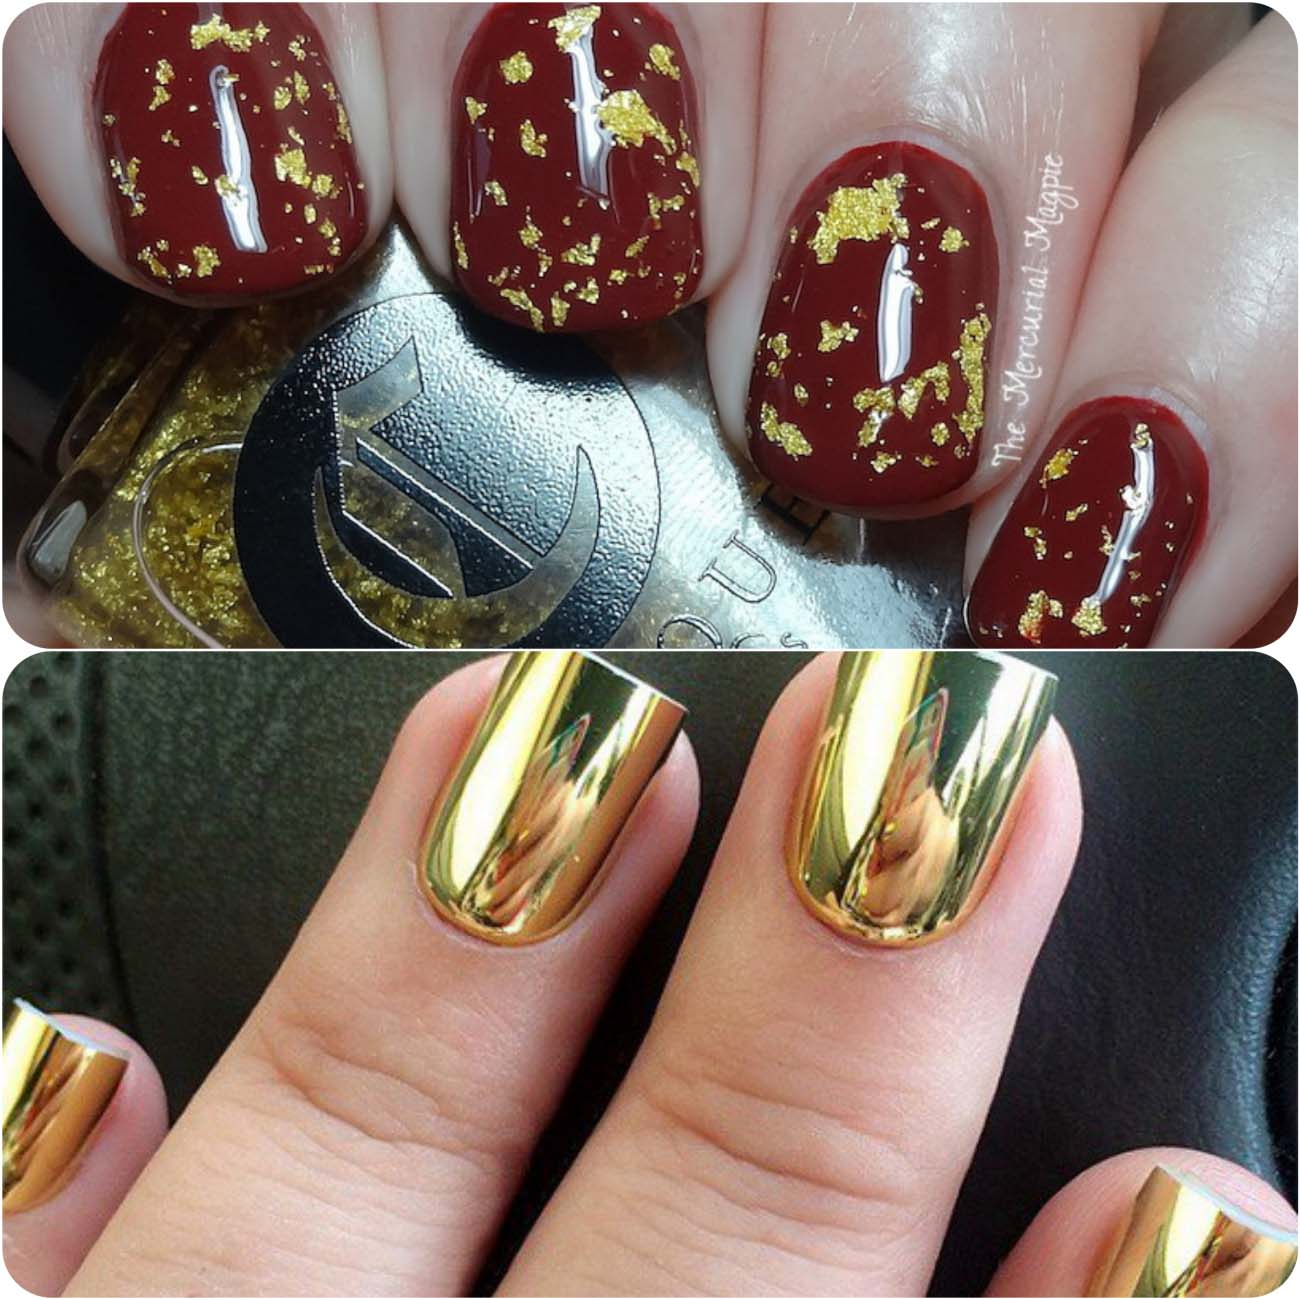 Best Dazzling Reflecting Nail Art Designs For Girls....styloplanet (5)